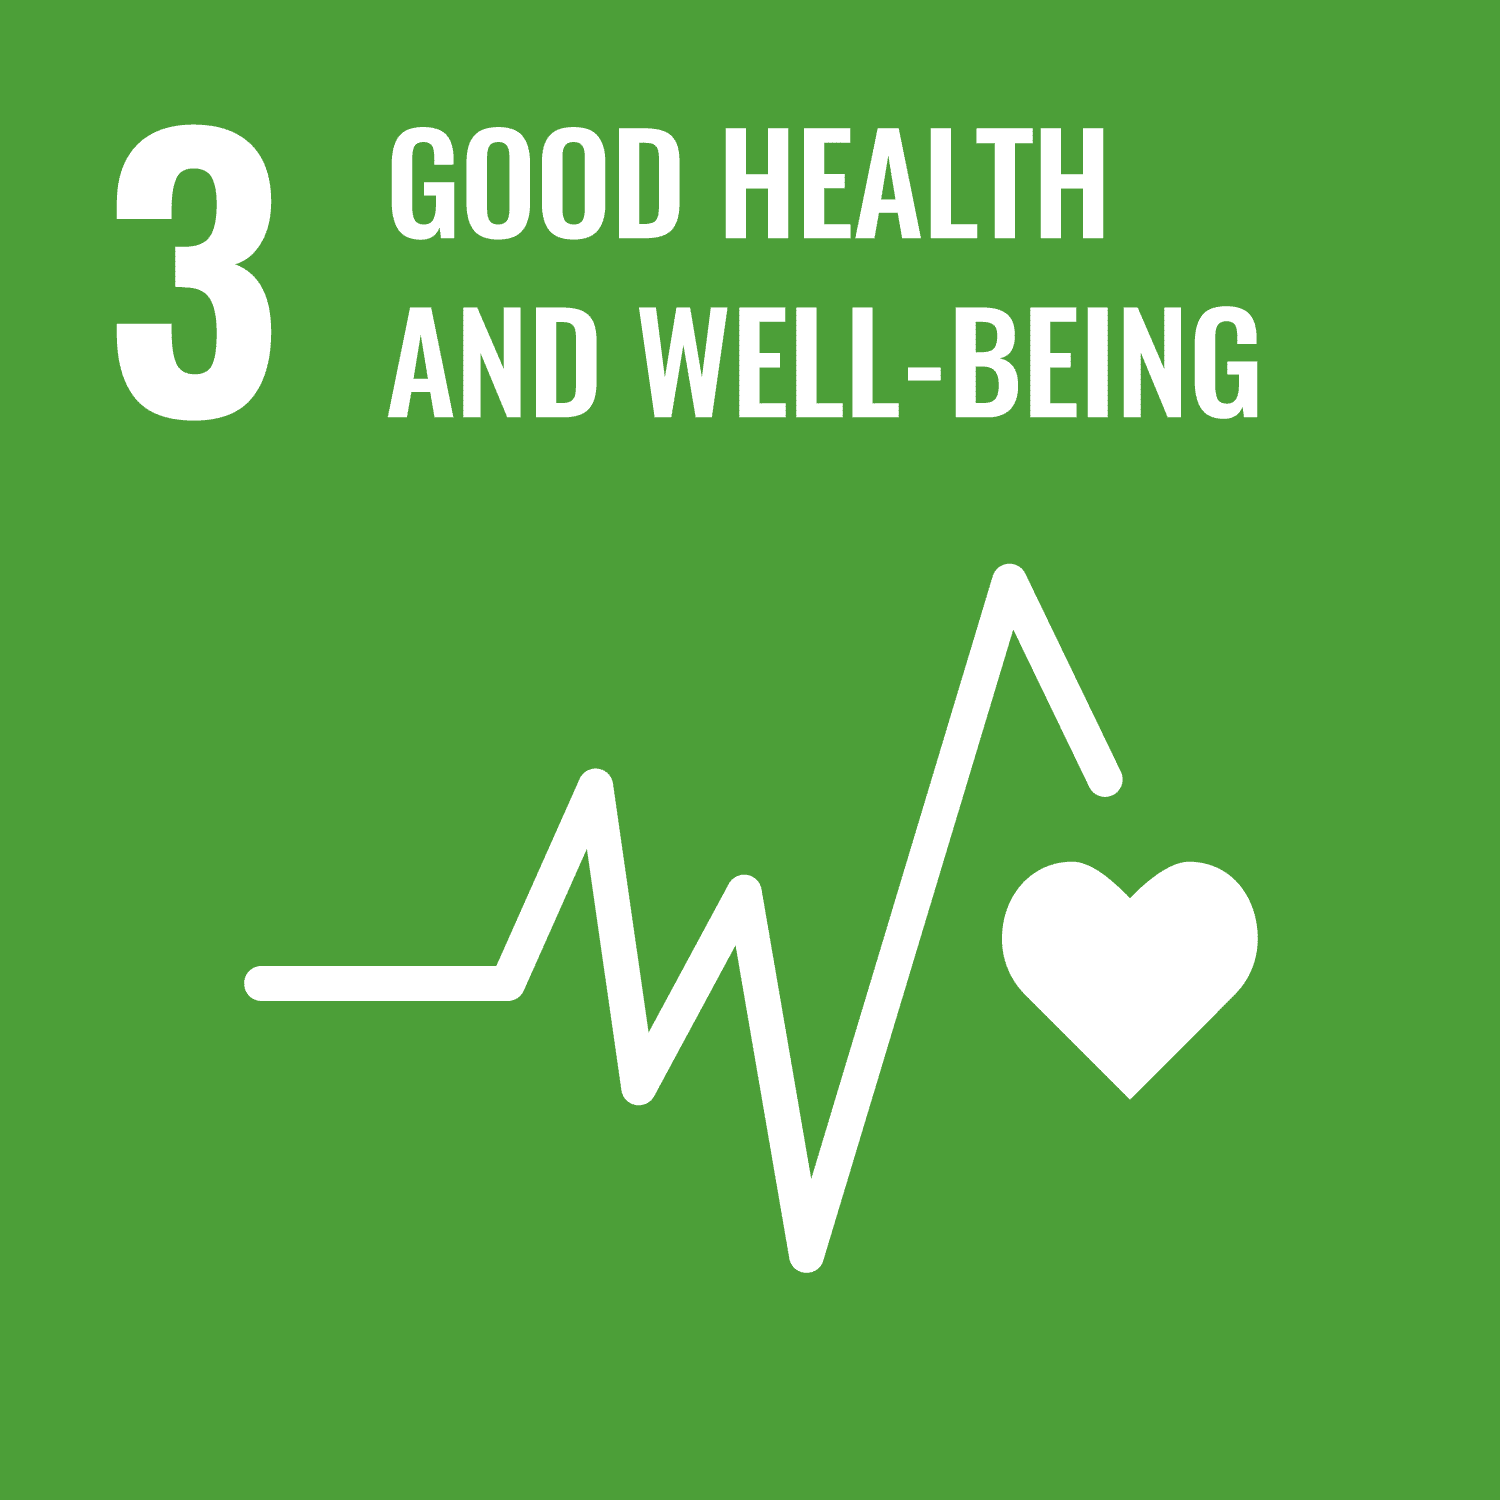 SDG Goal 03-Good Health and Well-Being